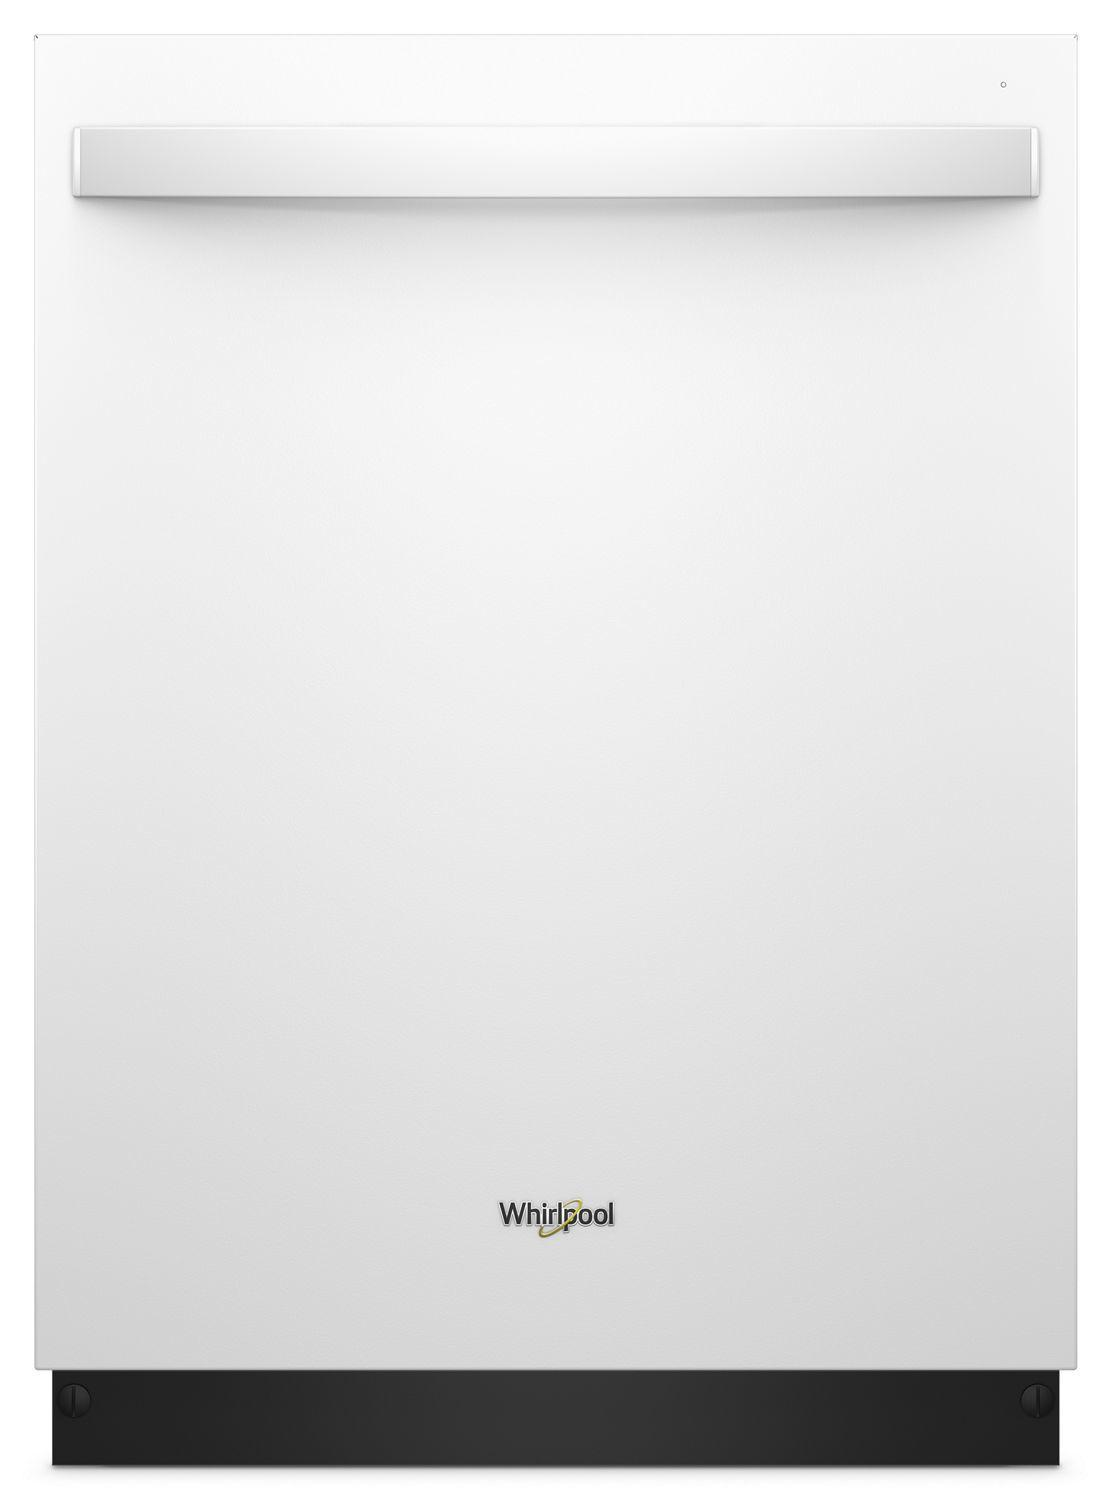 WhirlpoolStainless Steel Tub Dishwasher With Third Level Rack White